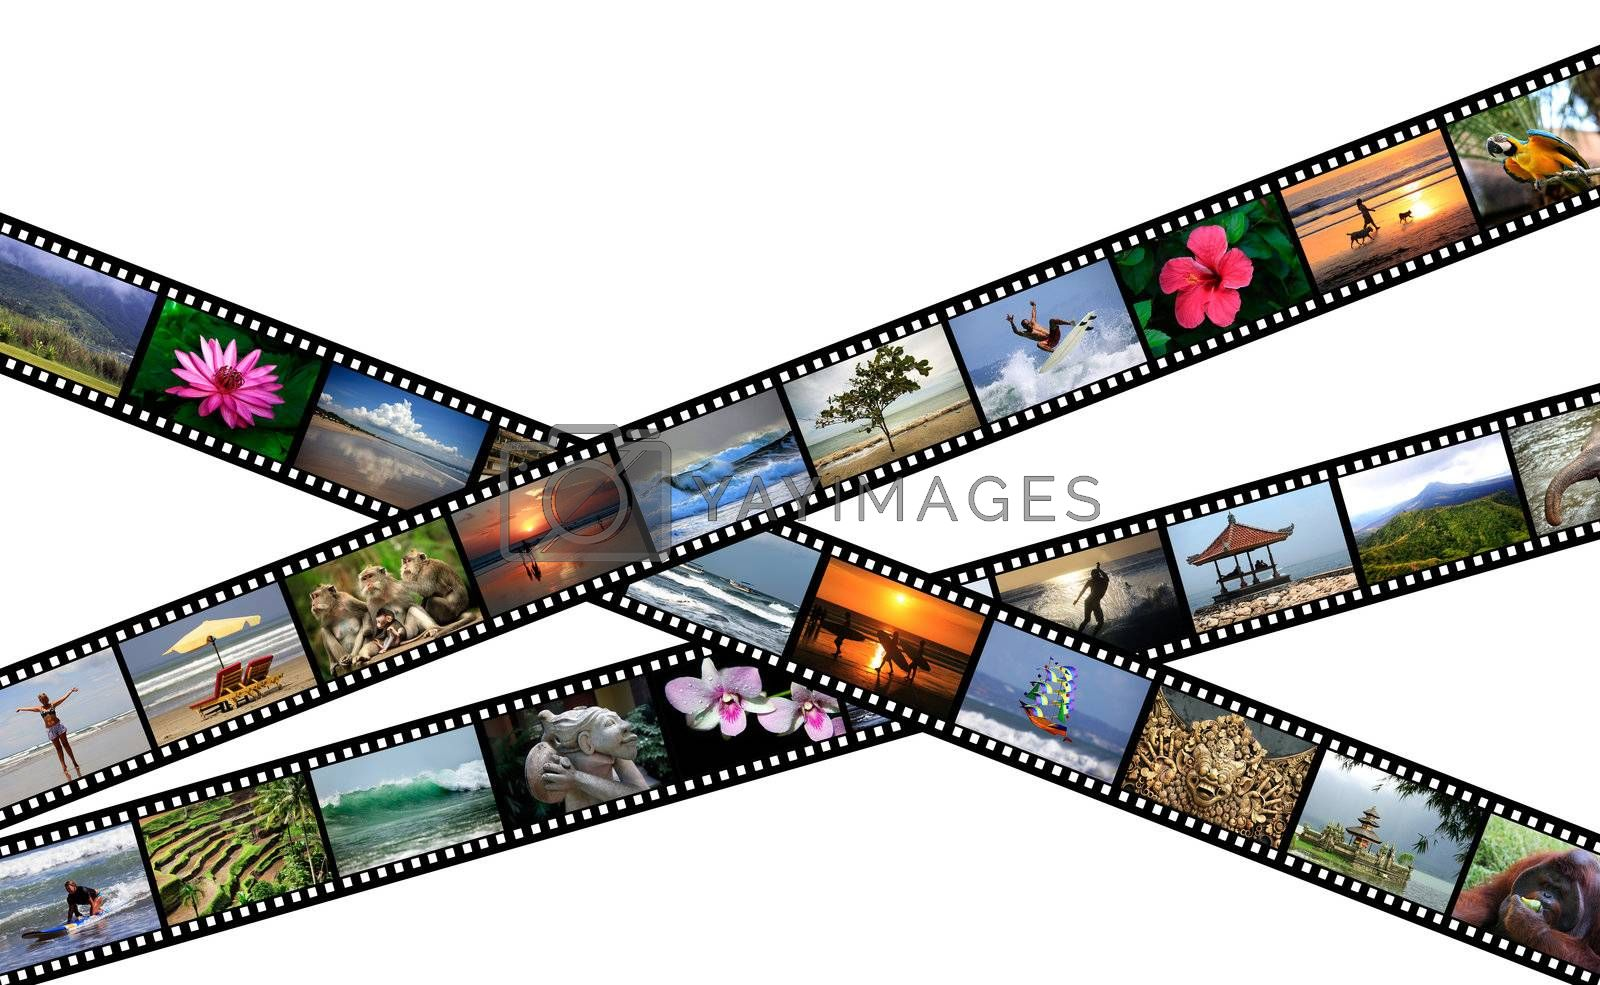 Film strips with travel photos. Indonesia, Island Bali. All photos taken by me, filmstrip illustration made by me.